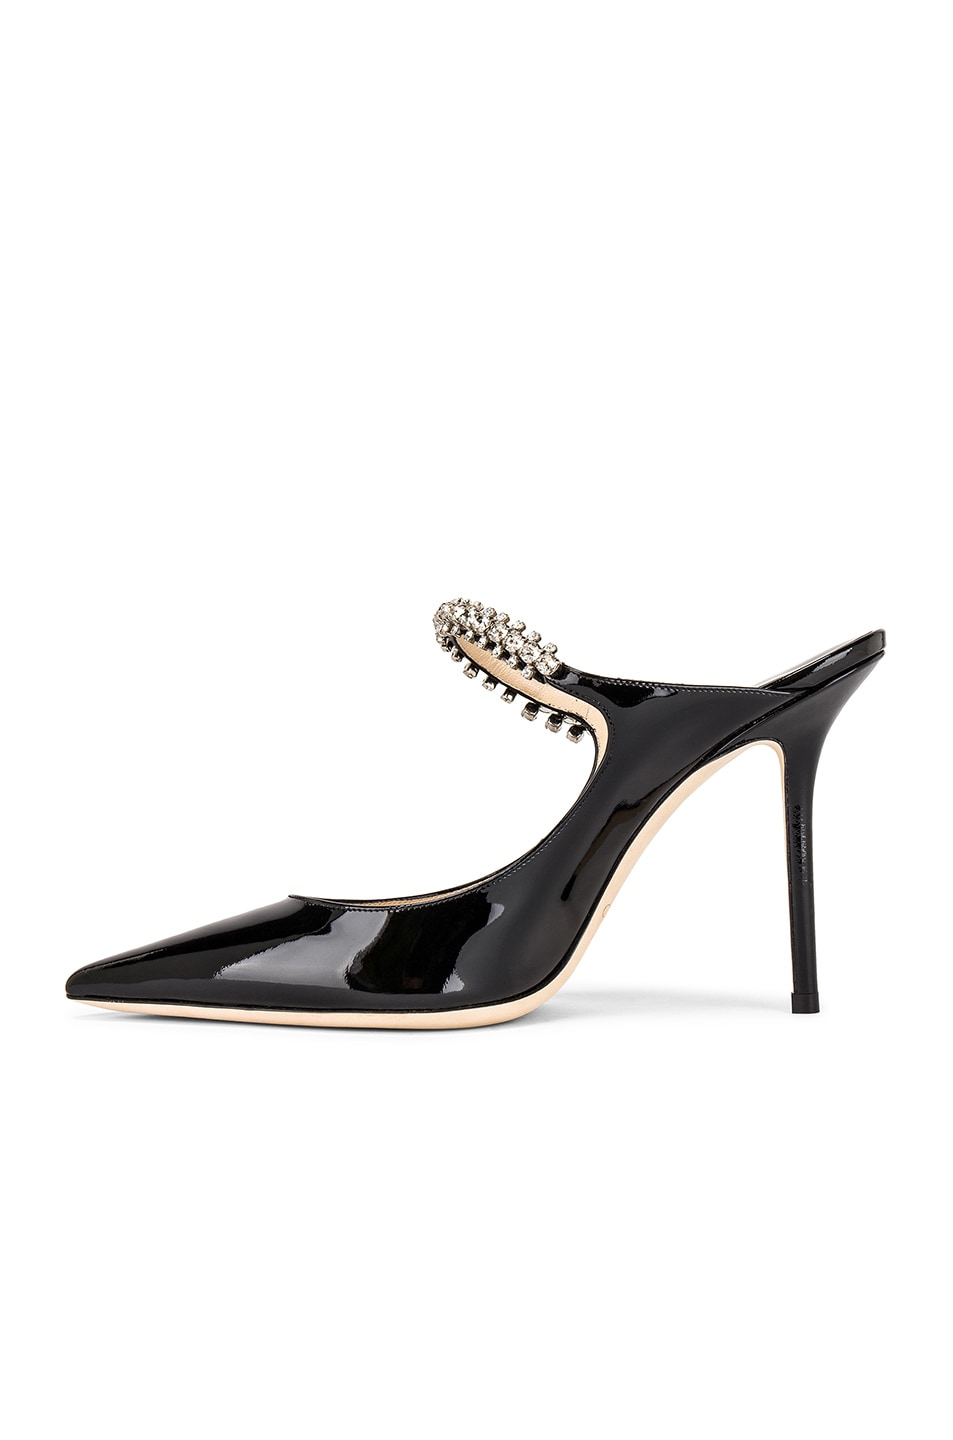 Image 5 of Jimmy Choo Bing 100 Patent Leather Mule in Black